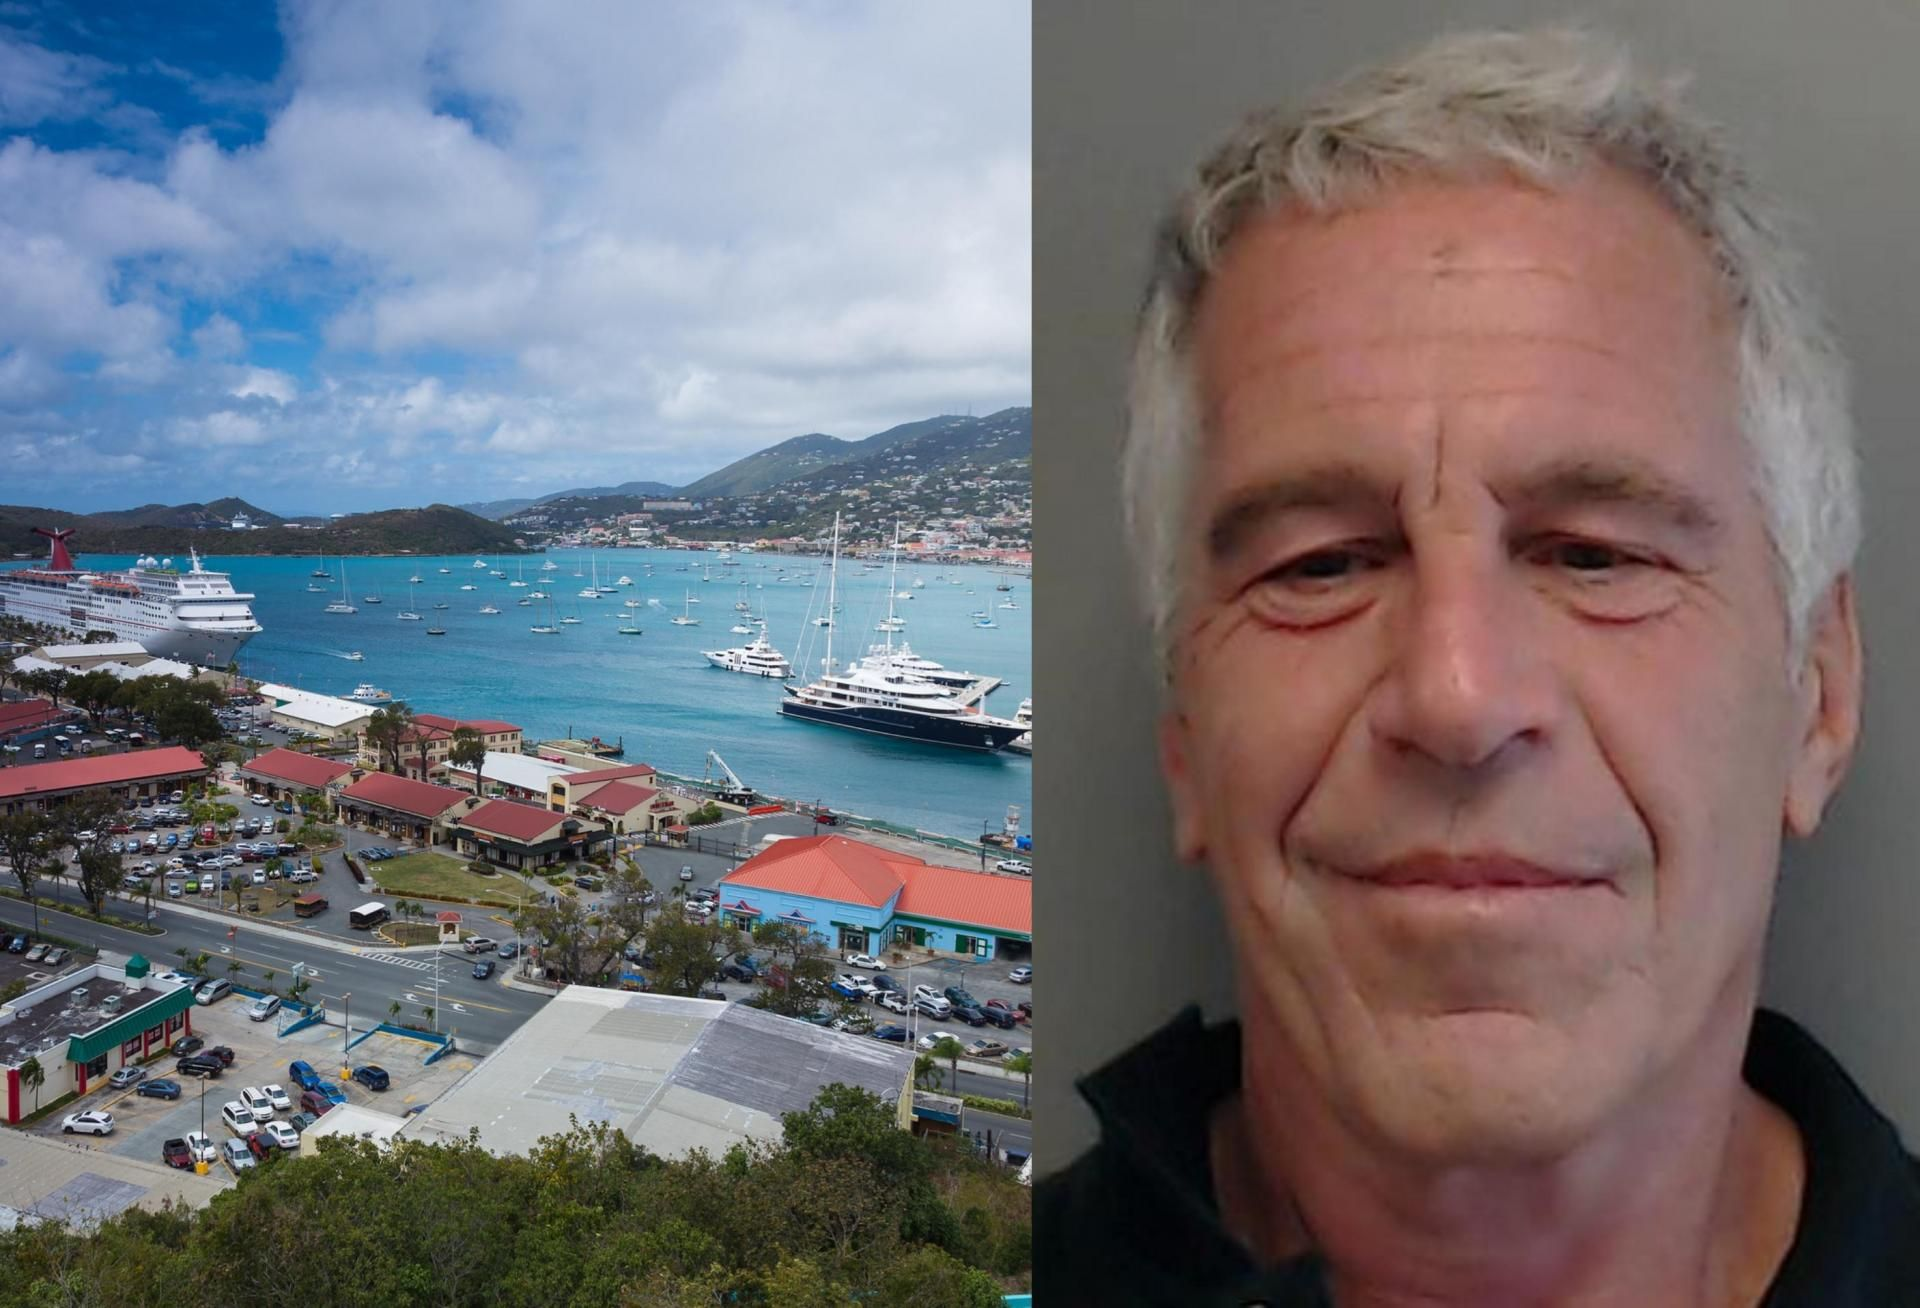 Real Estate Tycoon Andrew Farkas, Deutsche Bank The Latest To Be Caught Up In Jeffrey Epstein Scandal